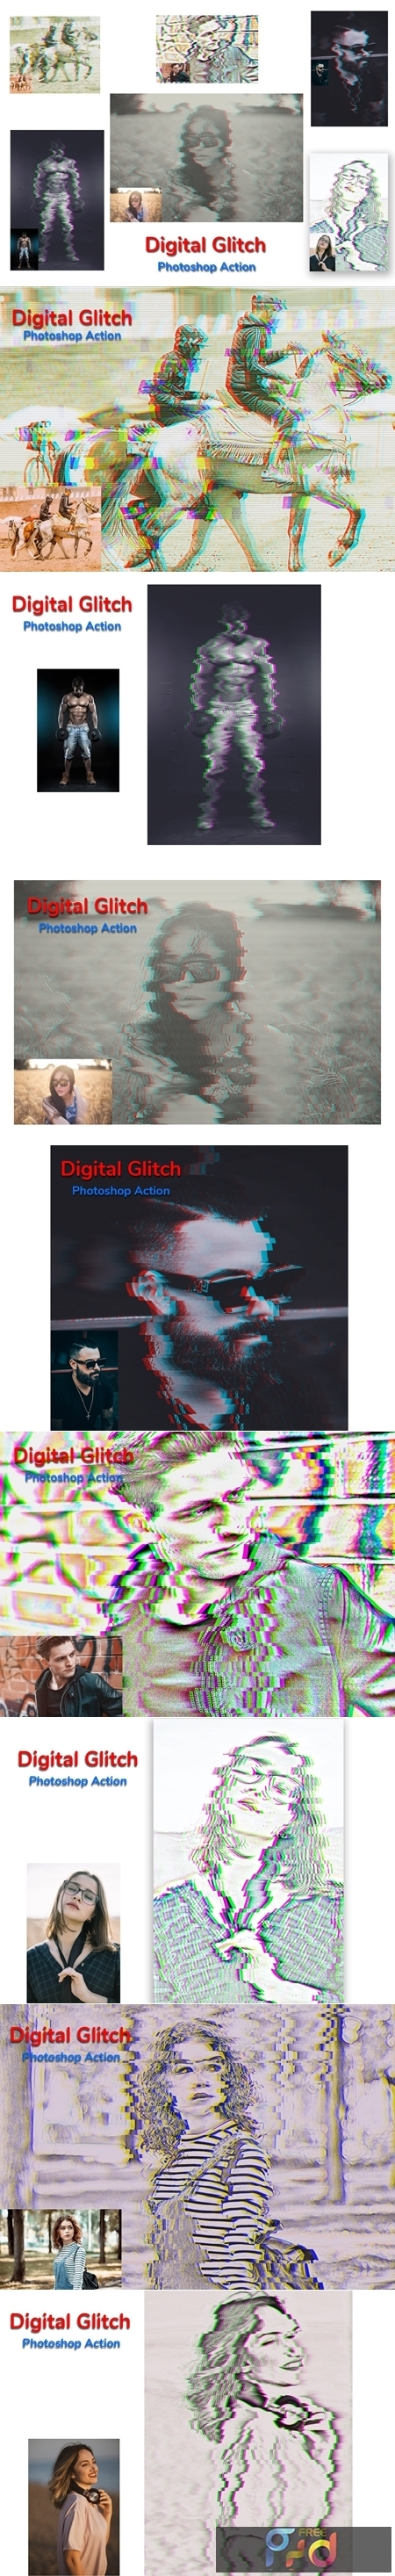 Digital Glitch Photoshop Action 4534753 1